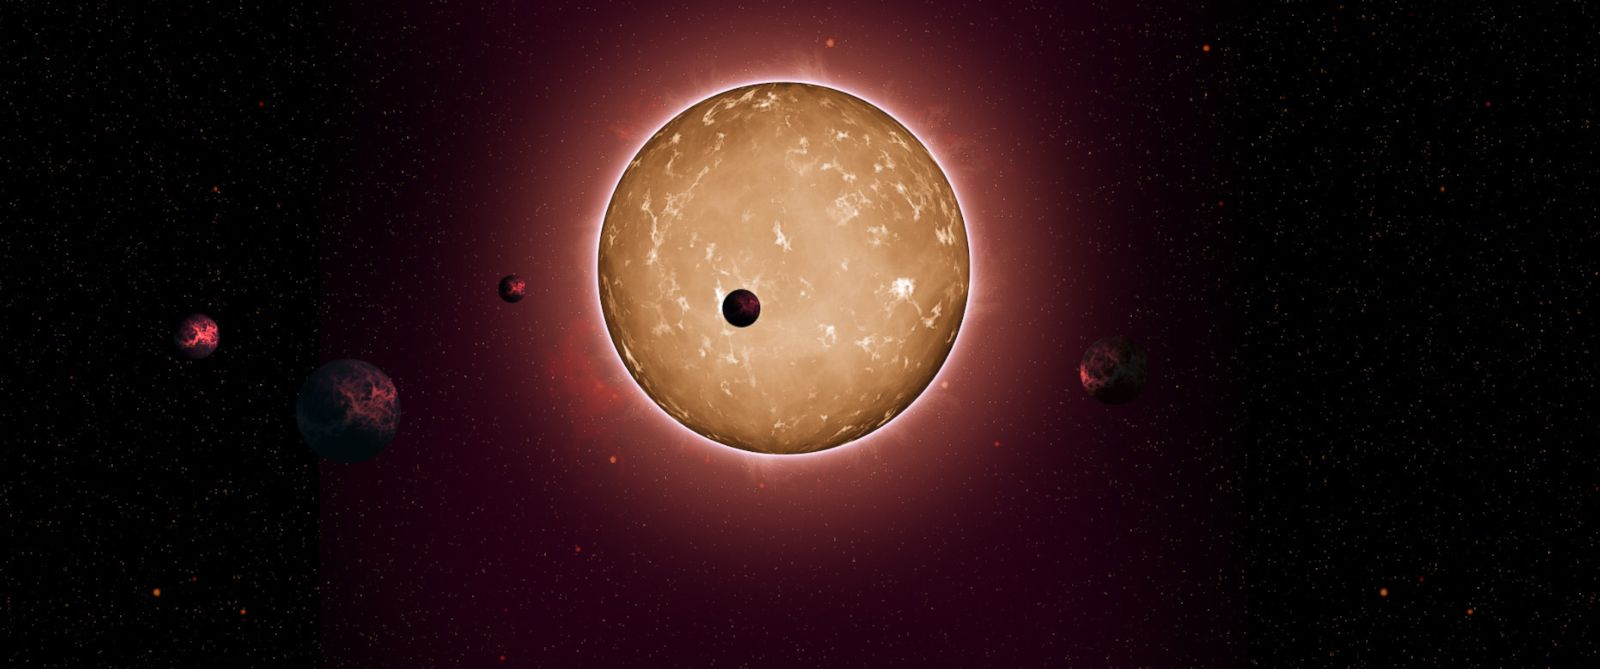 PHOTO: An illustration of Kepler-444 and its five Earth-sized planets.